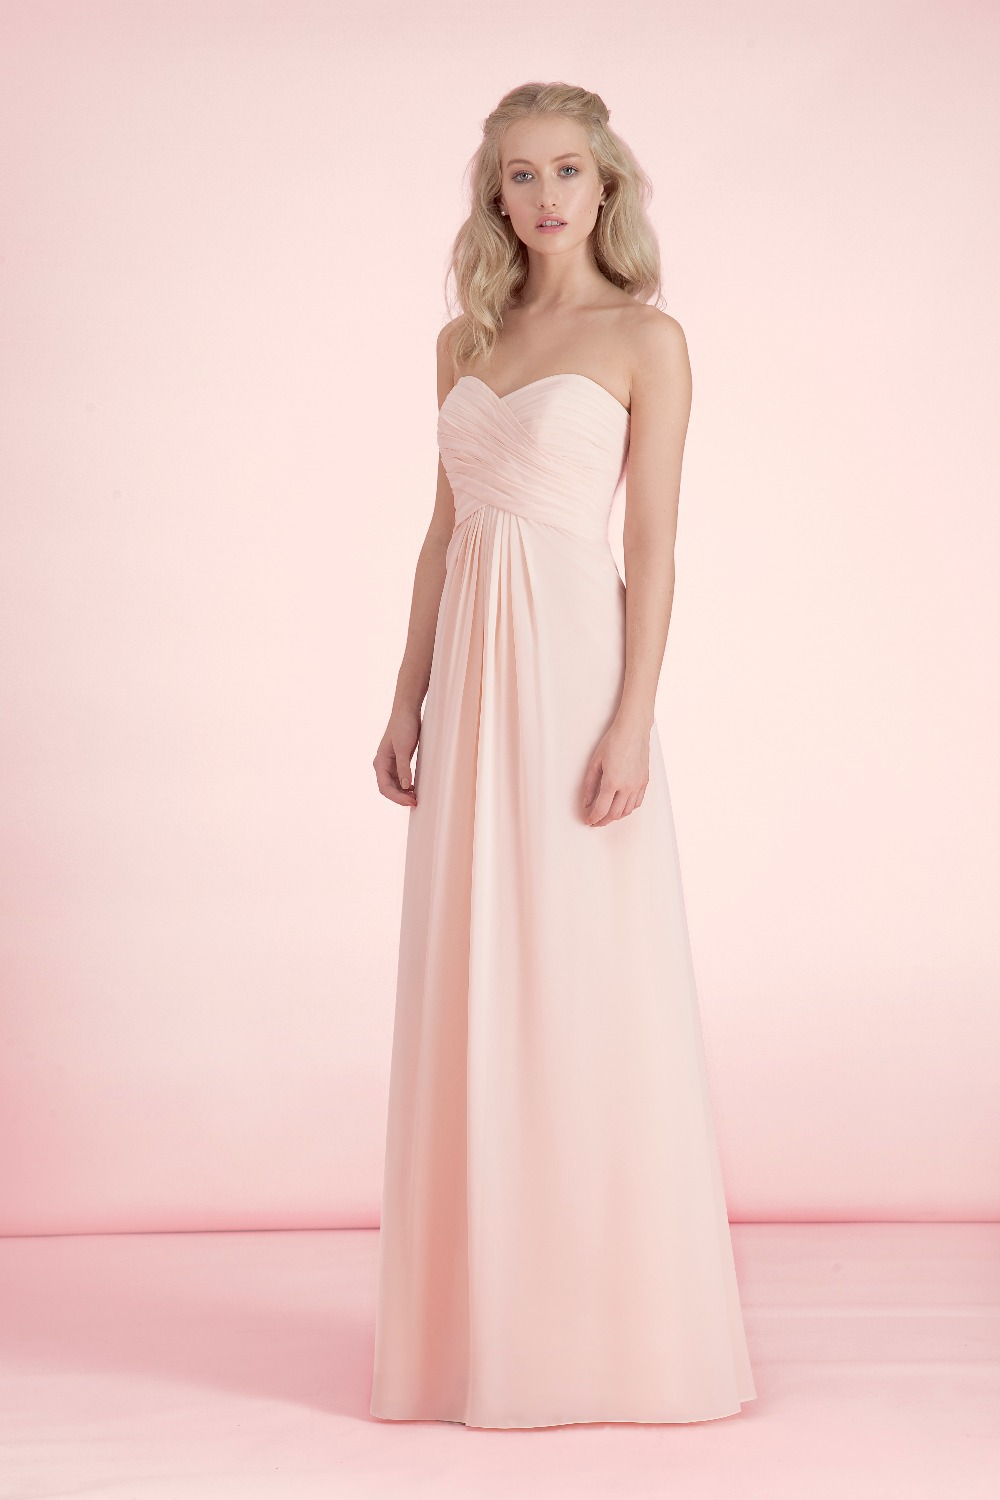 Aliexpress buy simple light pink bridesmaid dresses custom aliexpress buy simple light pink bridesmaid dresses custom made sweetheart pleated long chiffon a line special occasion dress formal gown klr20 from ombrellifo Image collections